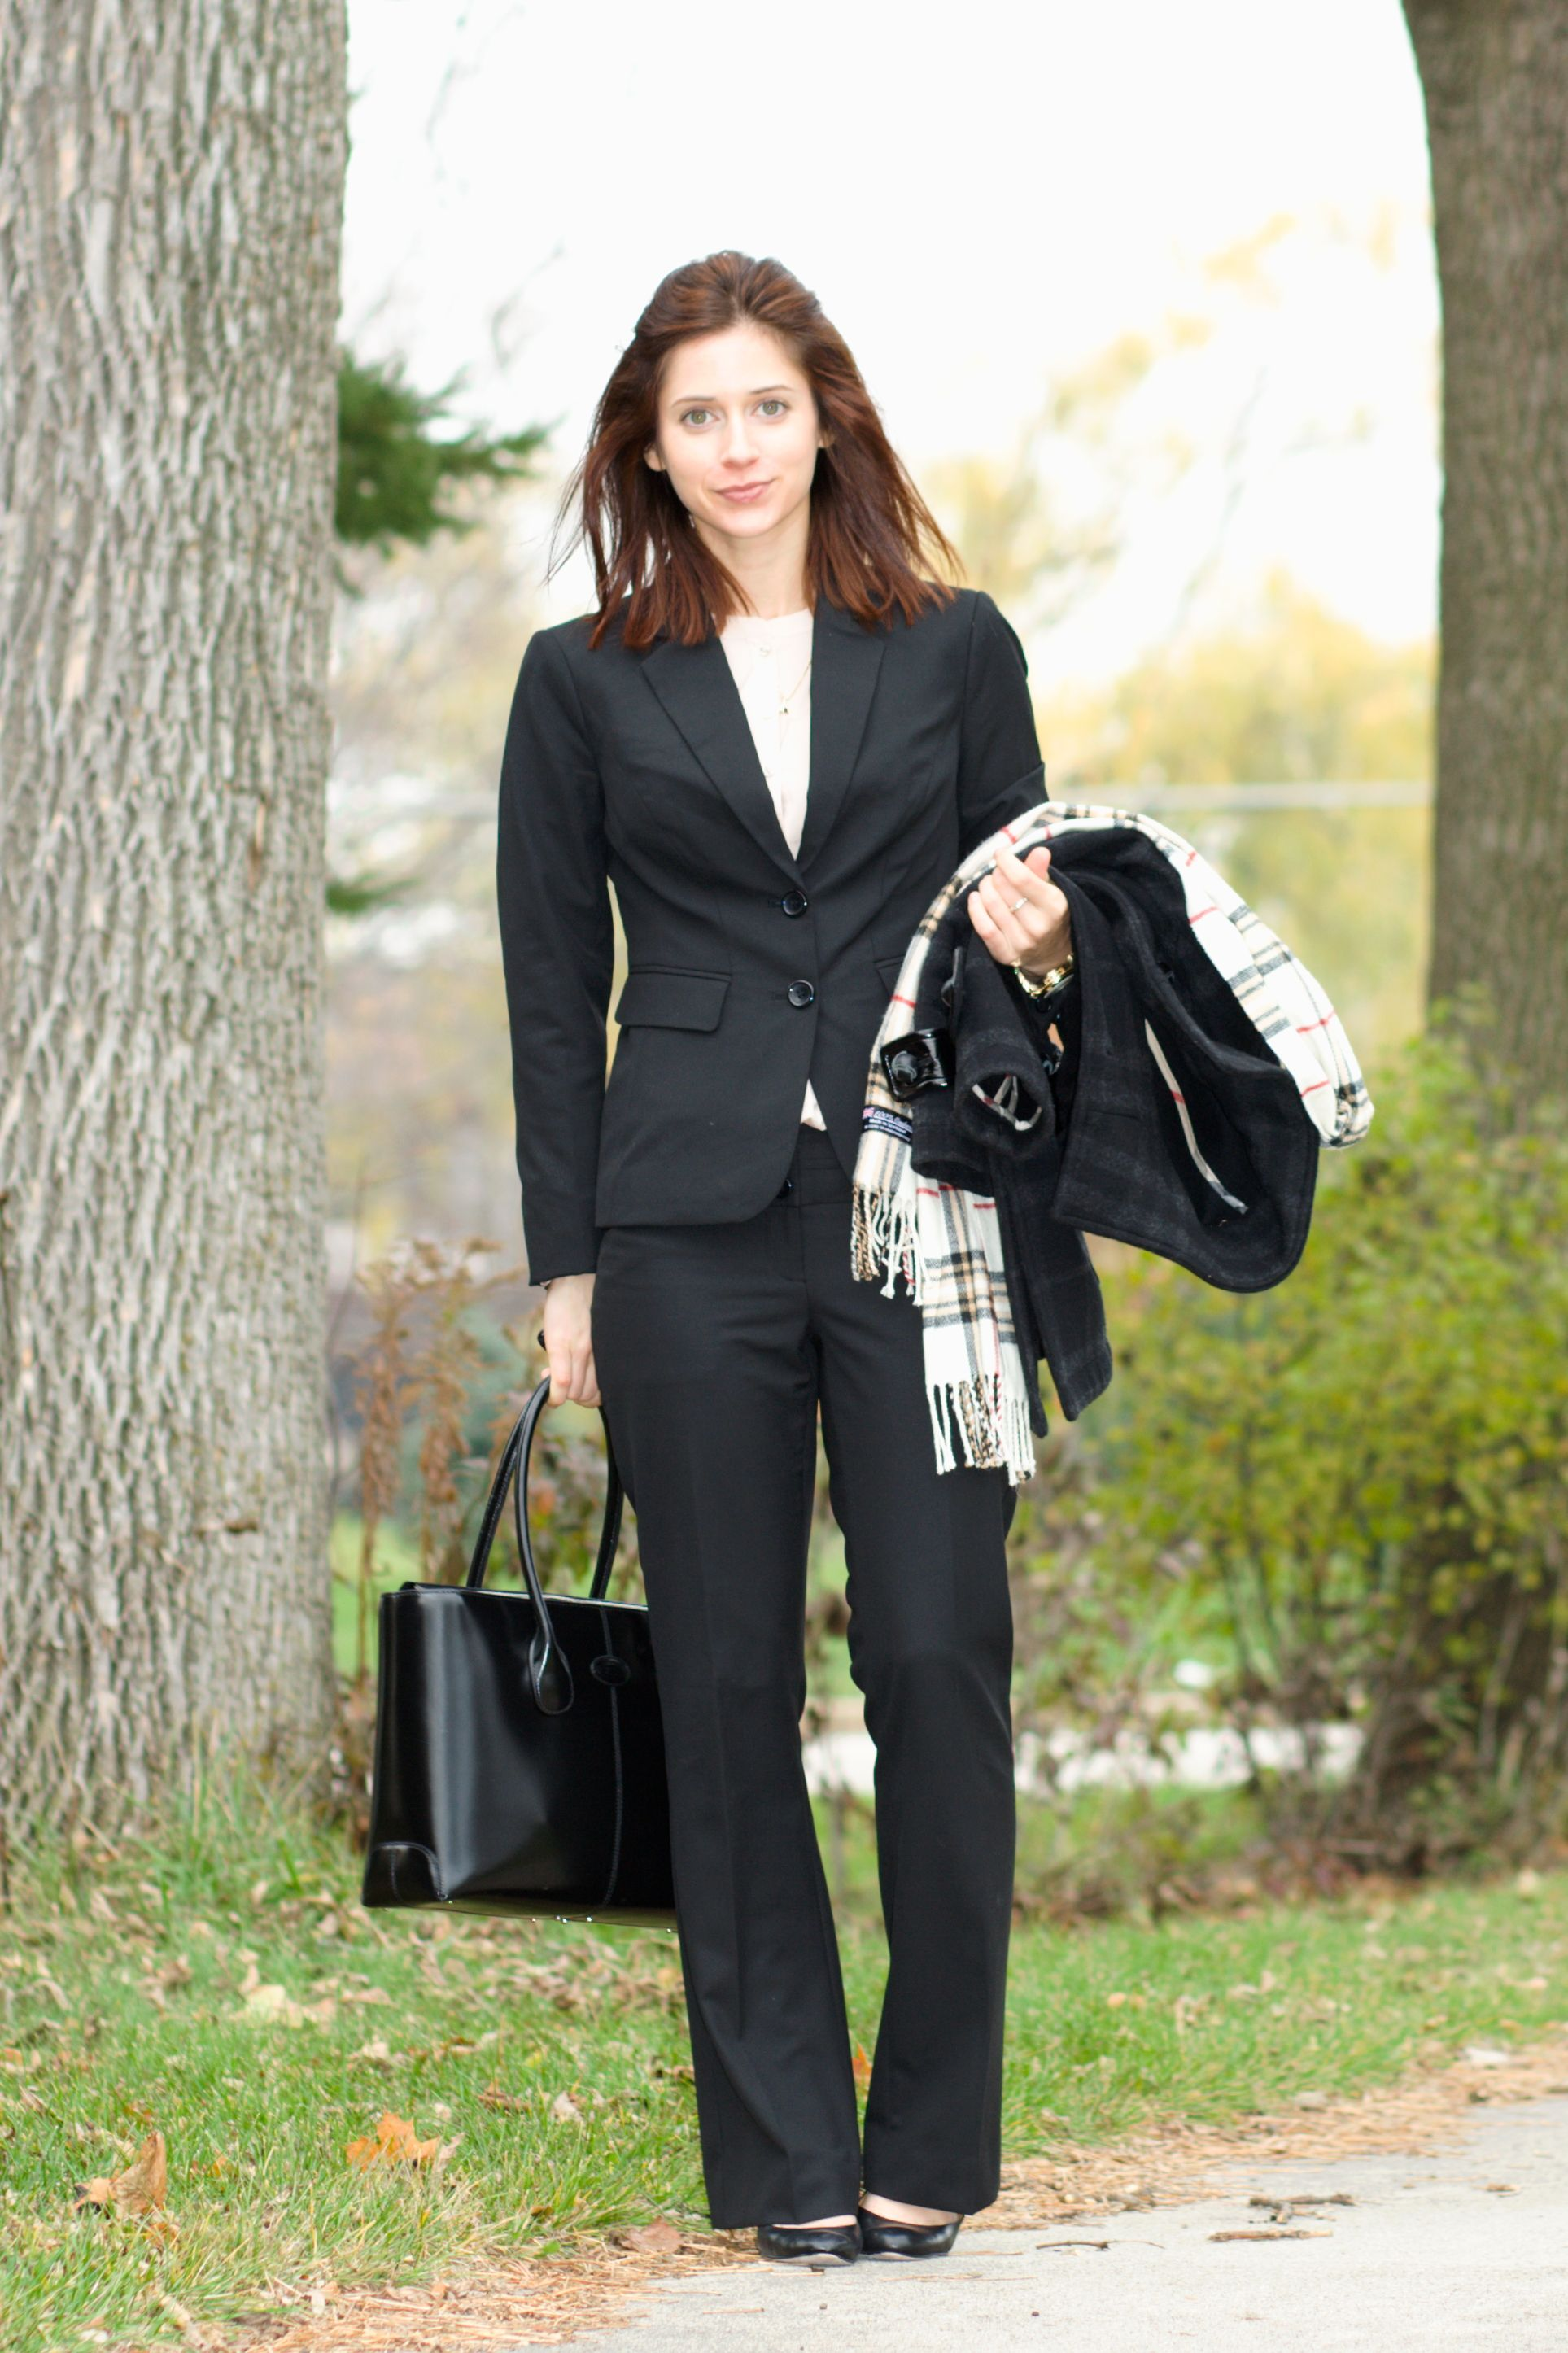 Residency Interview Trail 26-26  Interview suits, Medical